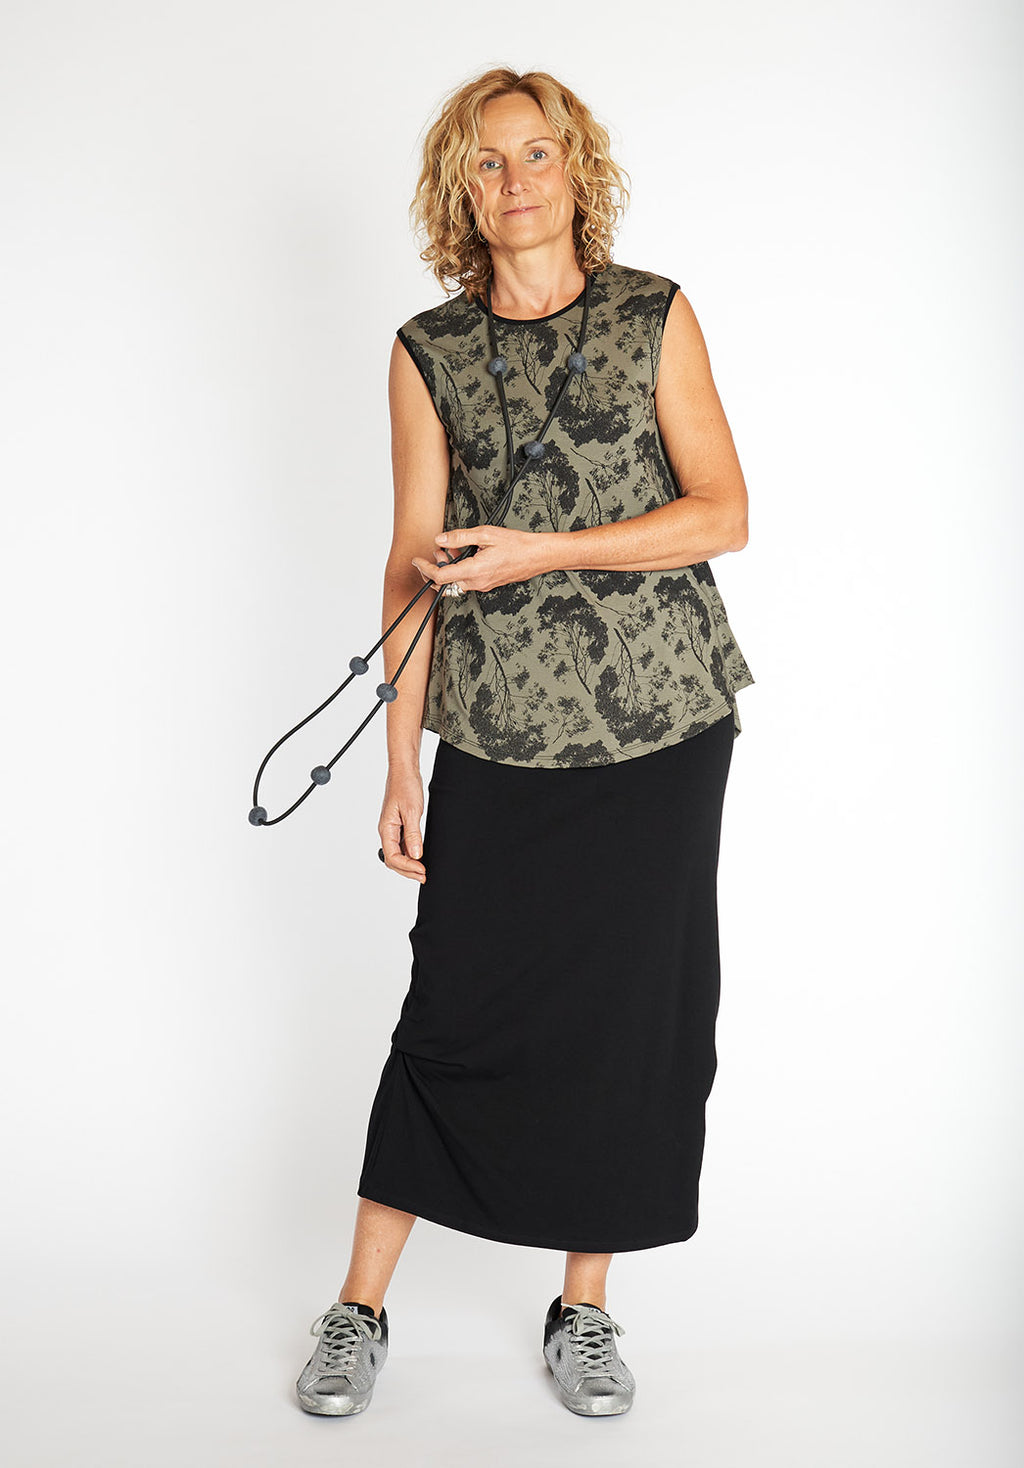 bamboo skirts australia, shop bamboo fashion, shop bamboo clothes, australian fashion designers, shop bamboo fashion online